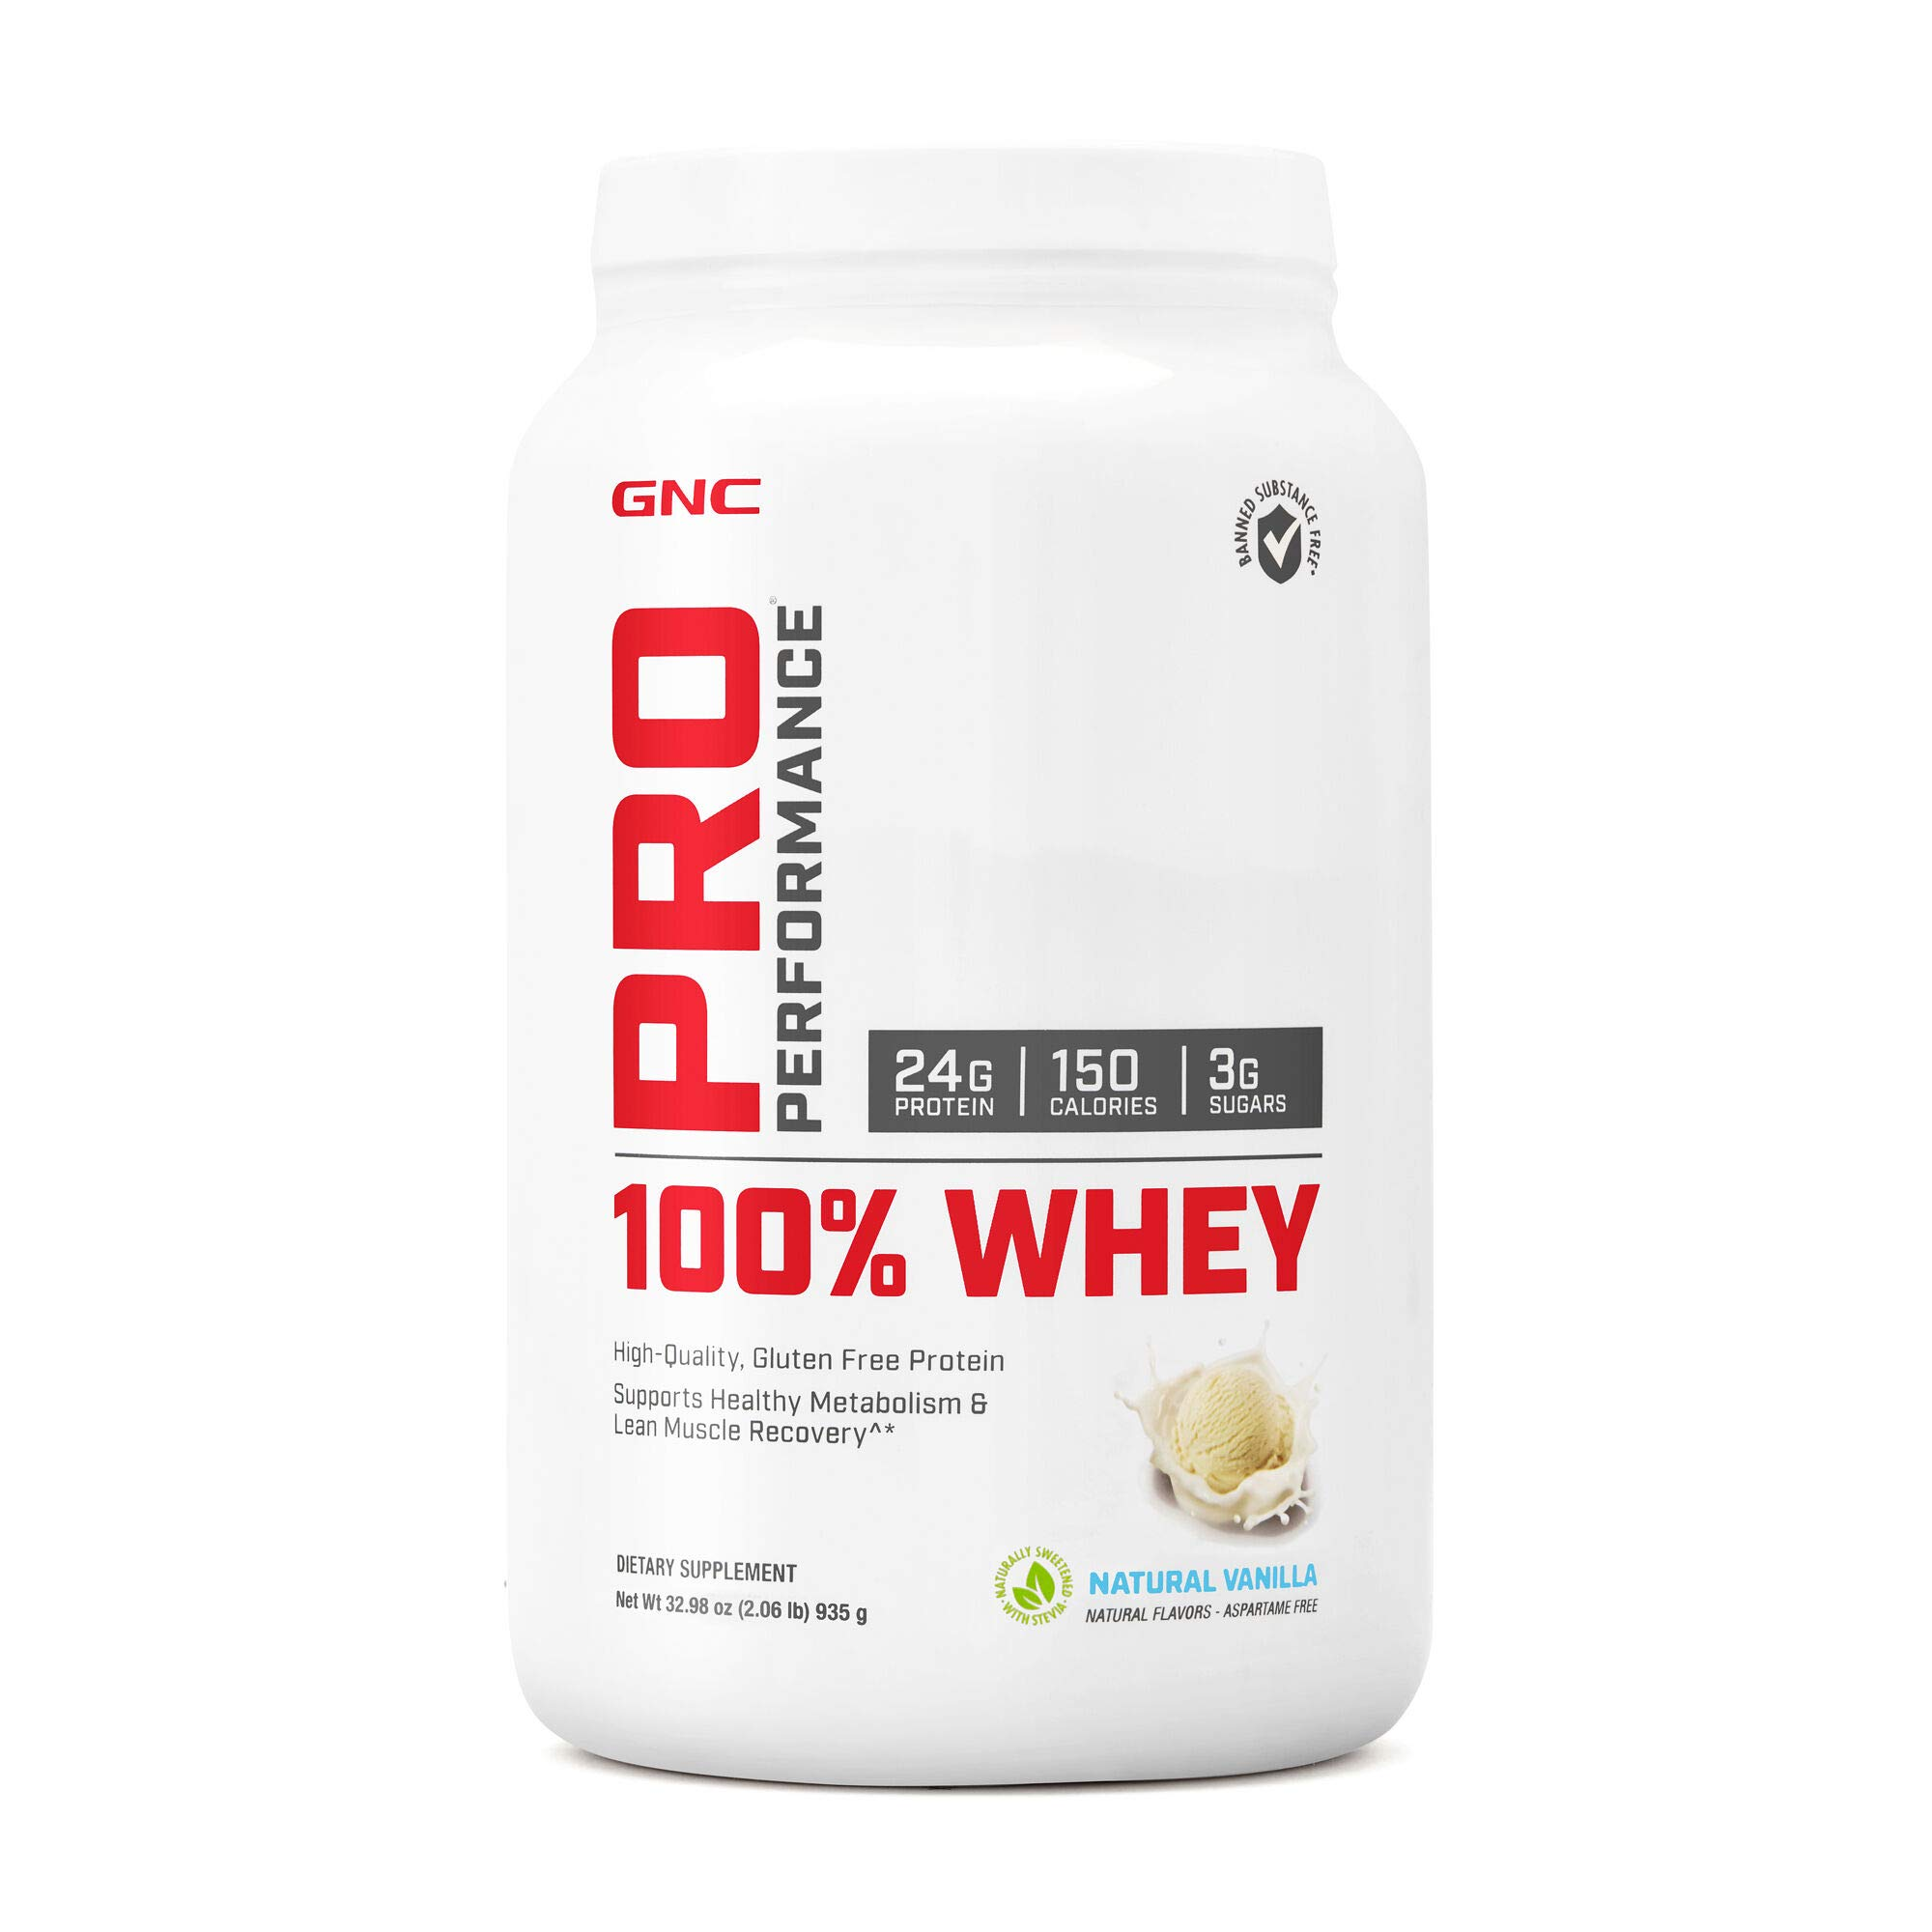 GNC Pro Performance 100 Whey Protein - Natural Vanilla 2.06 lbs. by GNC